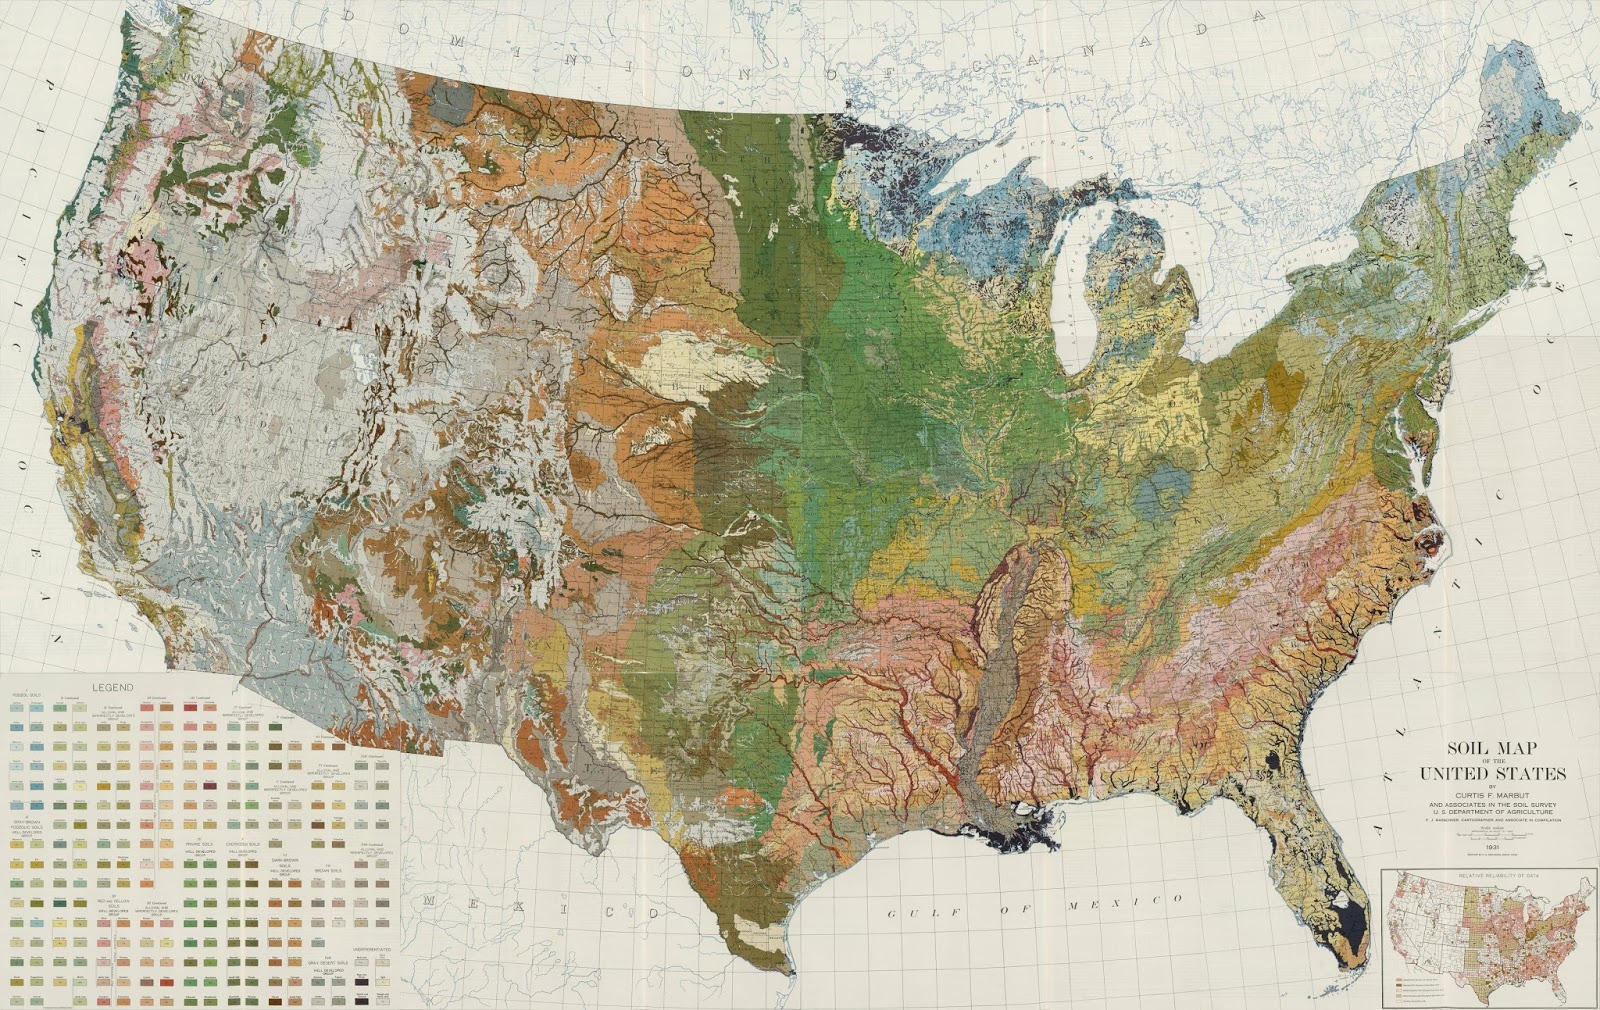 Soil map of the US (1931)